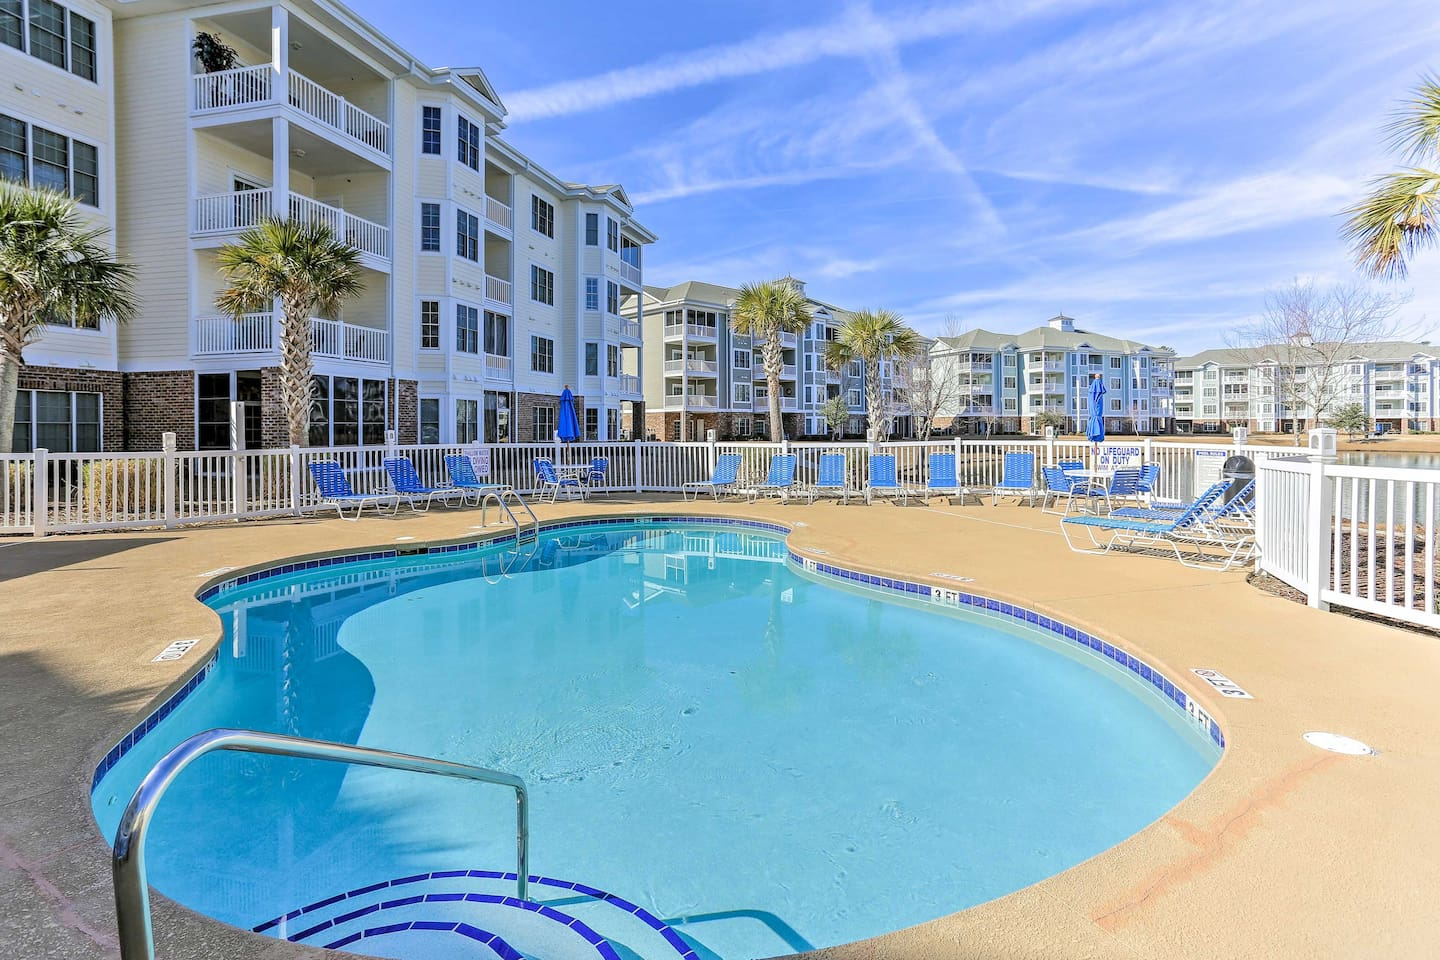 Dive headfirst into relaxation at this vacation rental condo in Myrtle Beach!